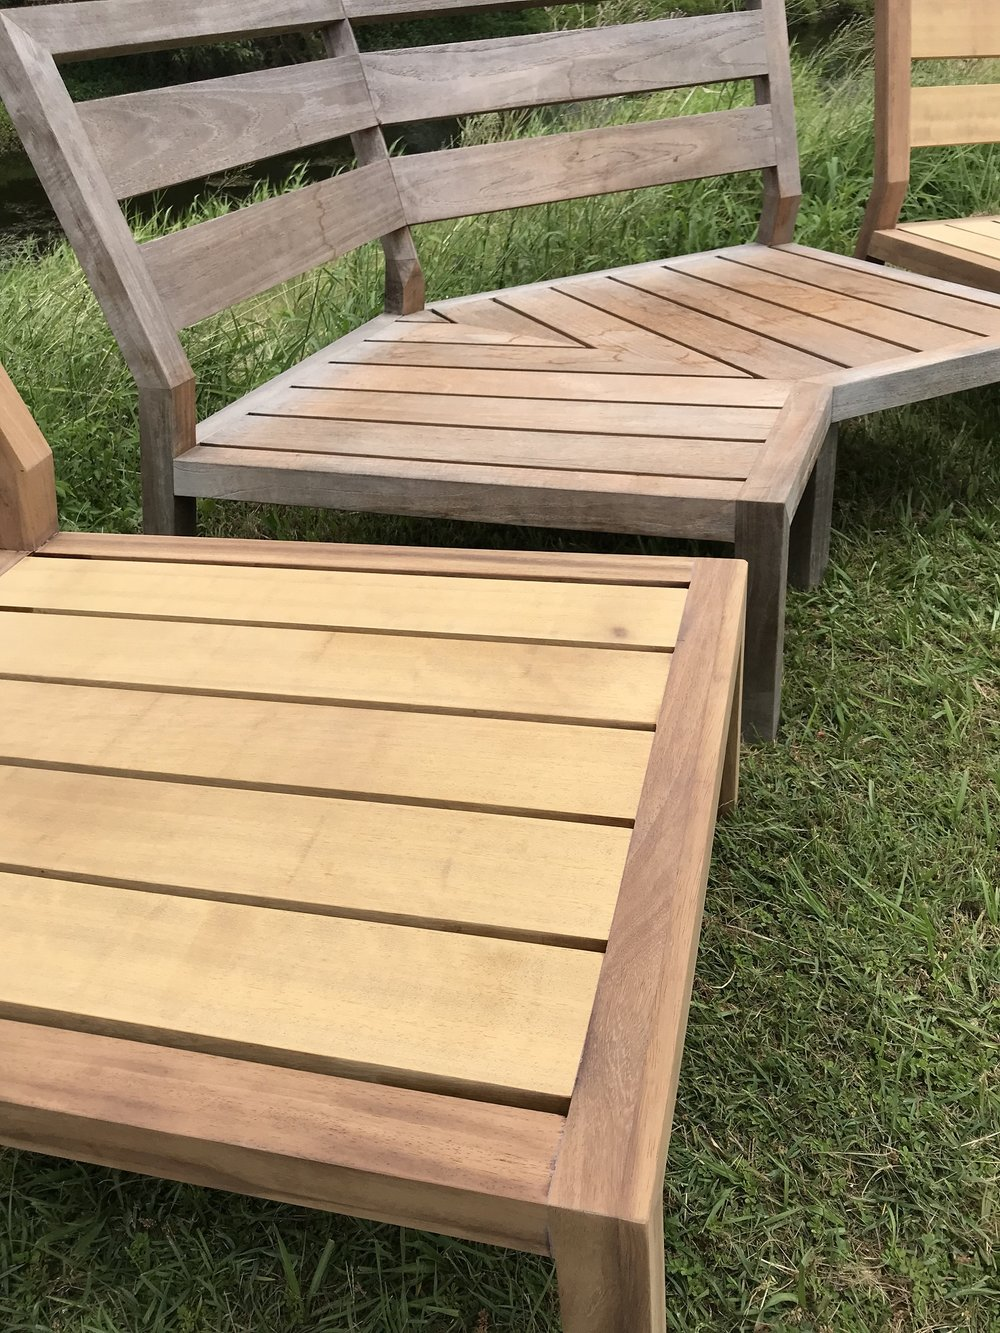 African Teak ready to weather naturally